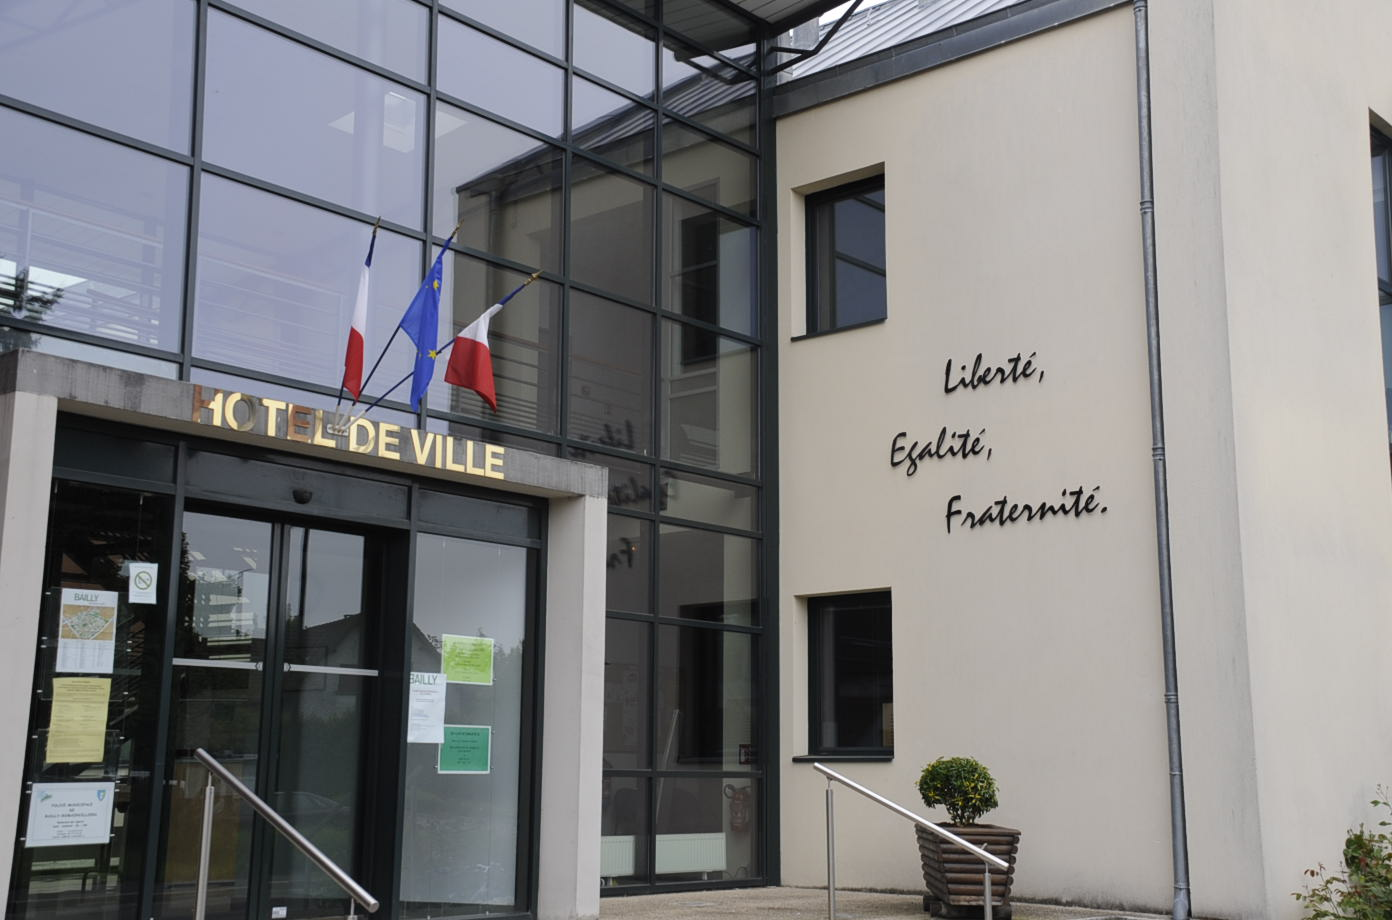 Votre mairie bailly romainvilliers for Bailly romainvilliers piscine